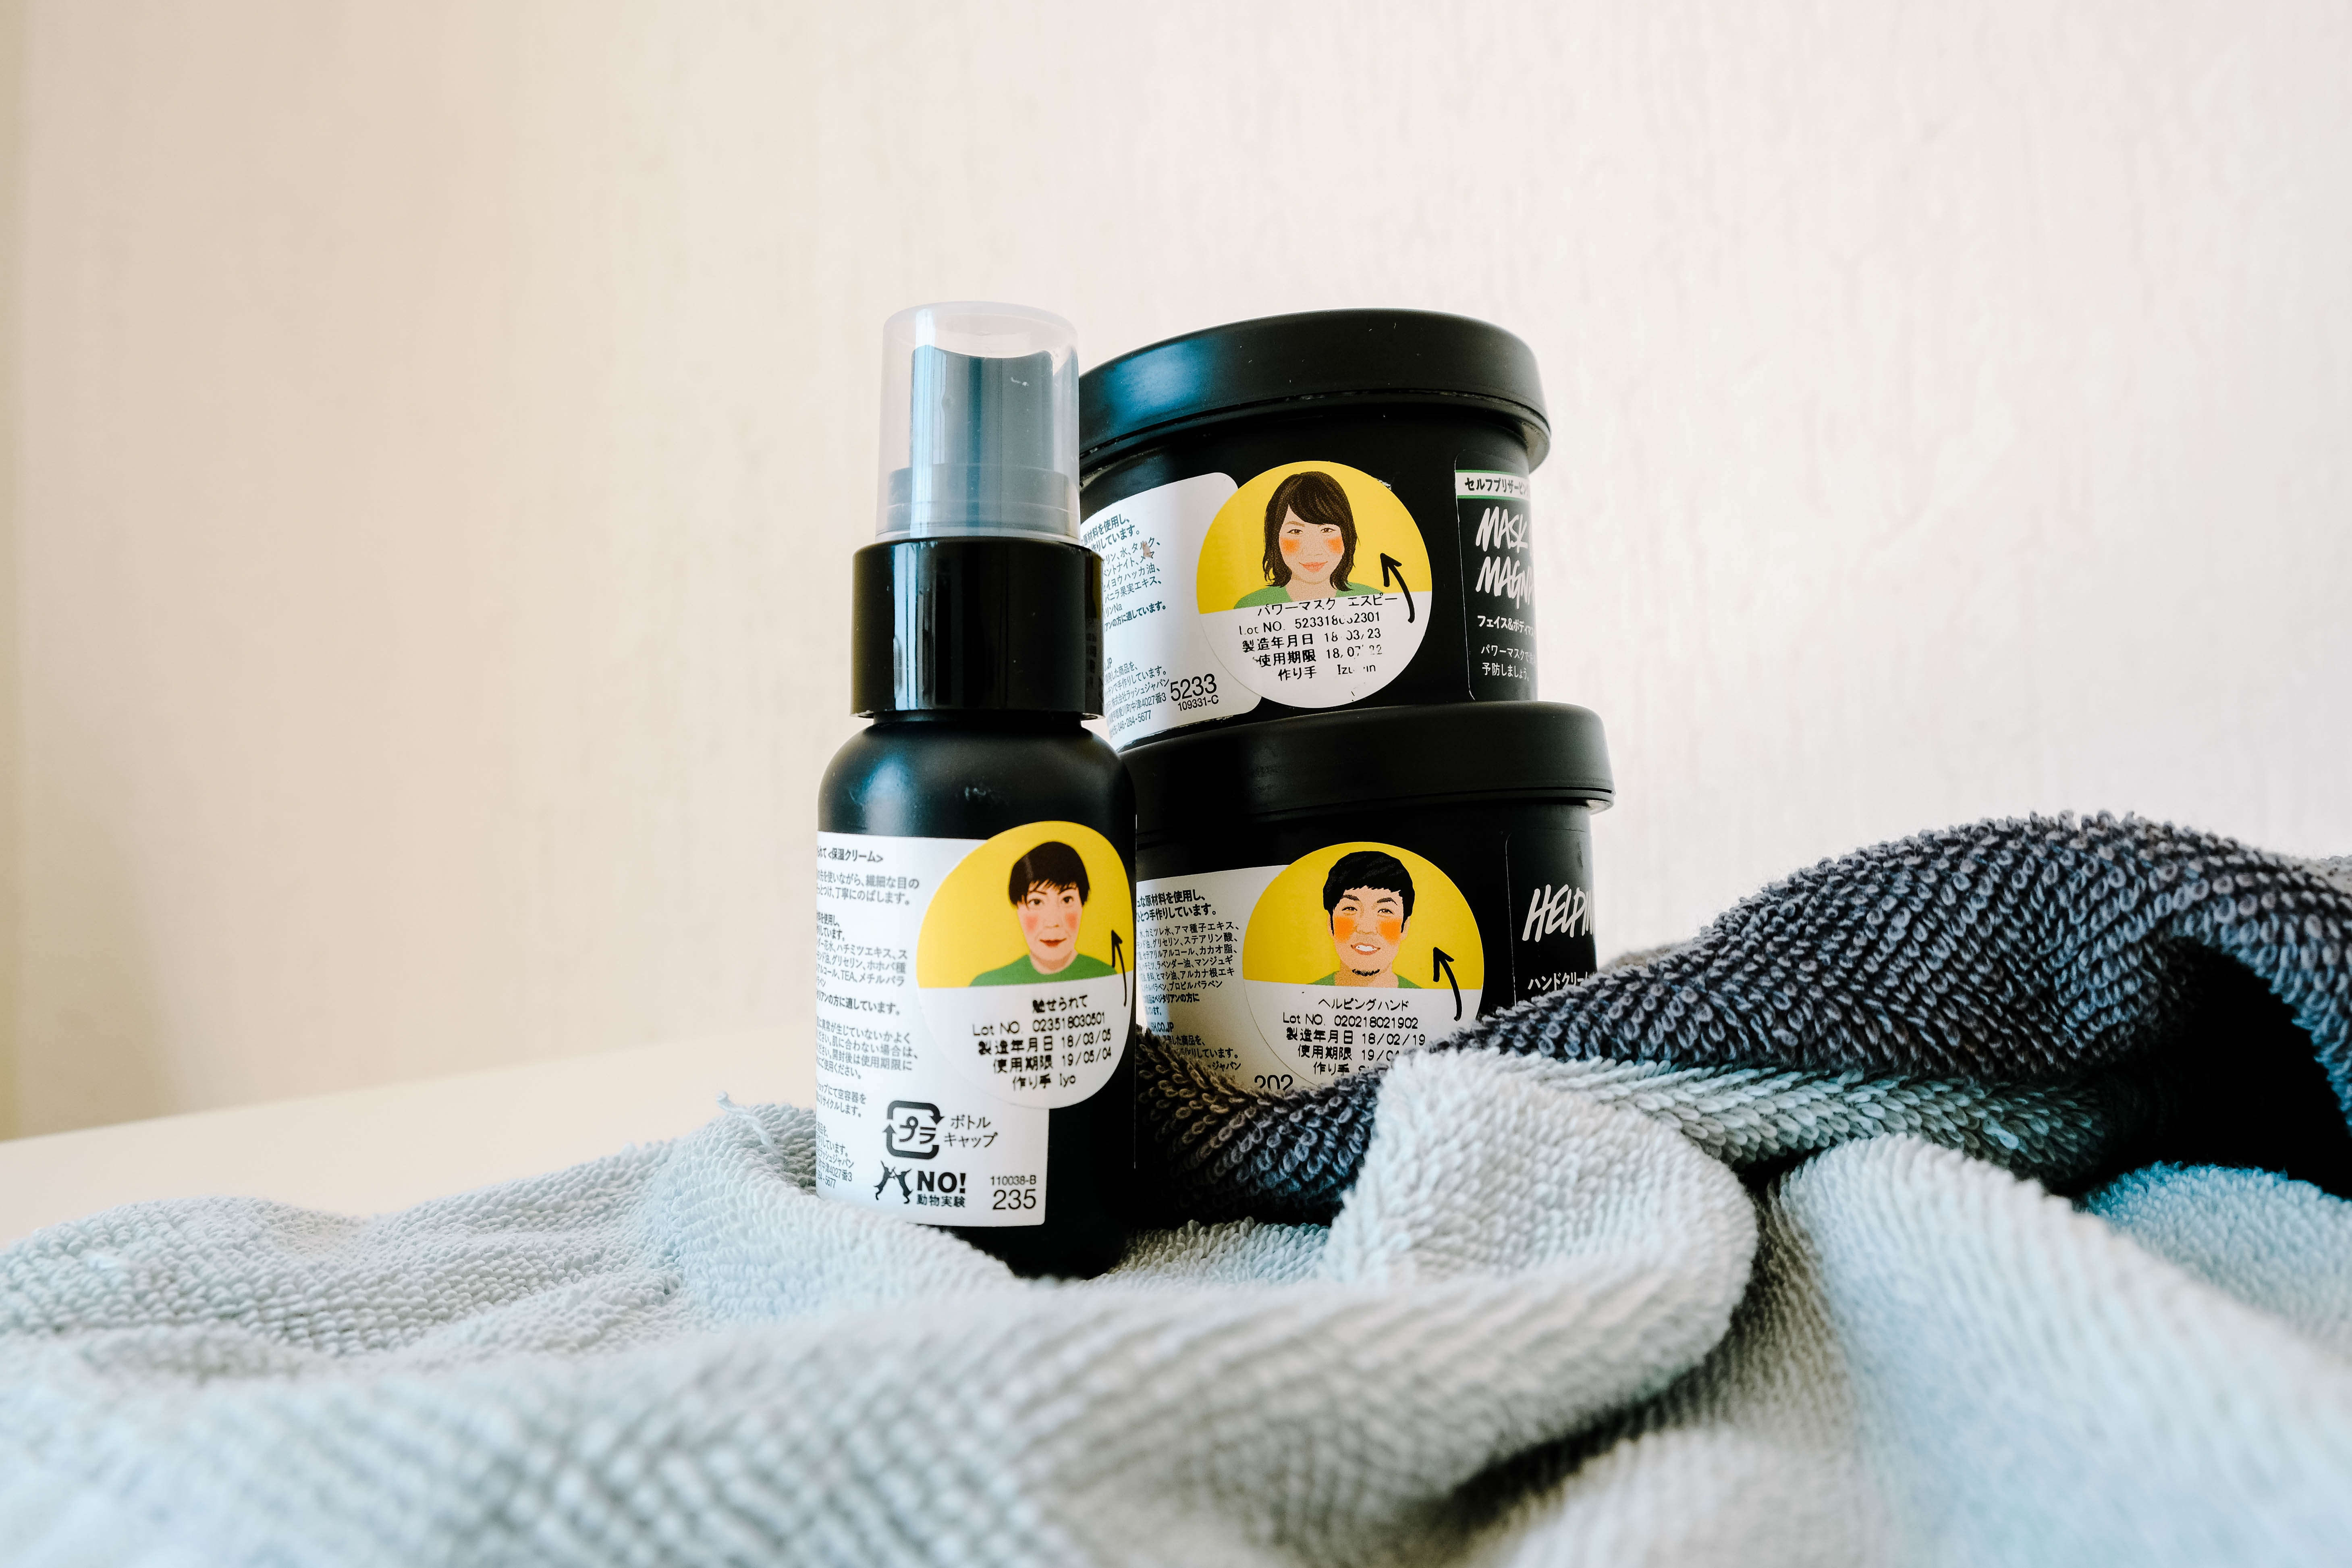 three black and white labeled hair products on white and grey textile